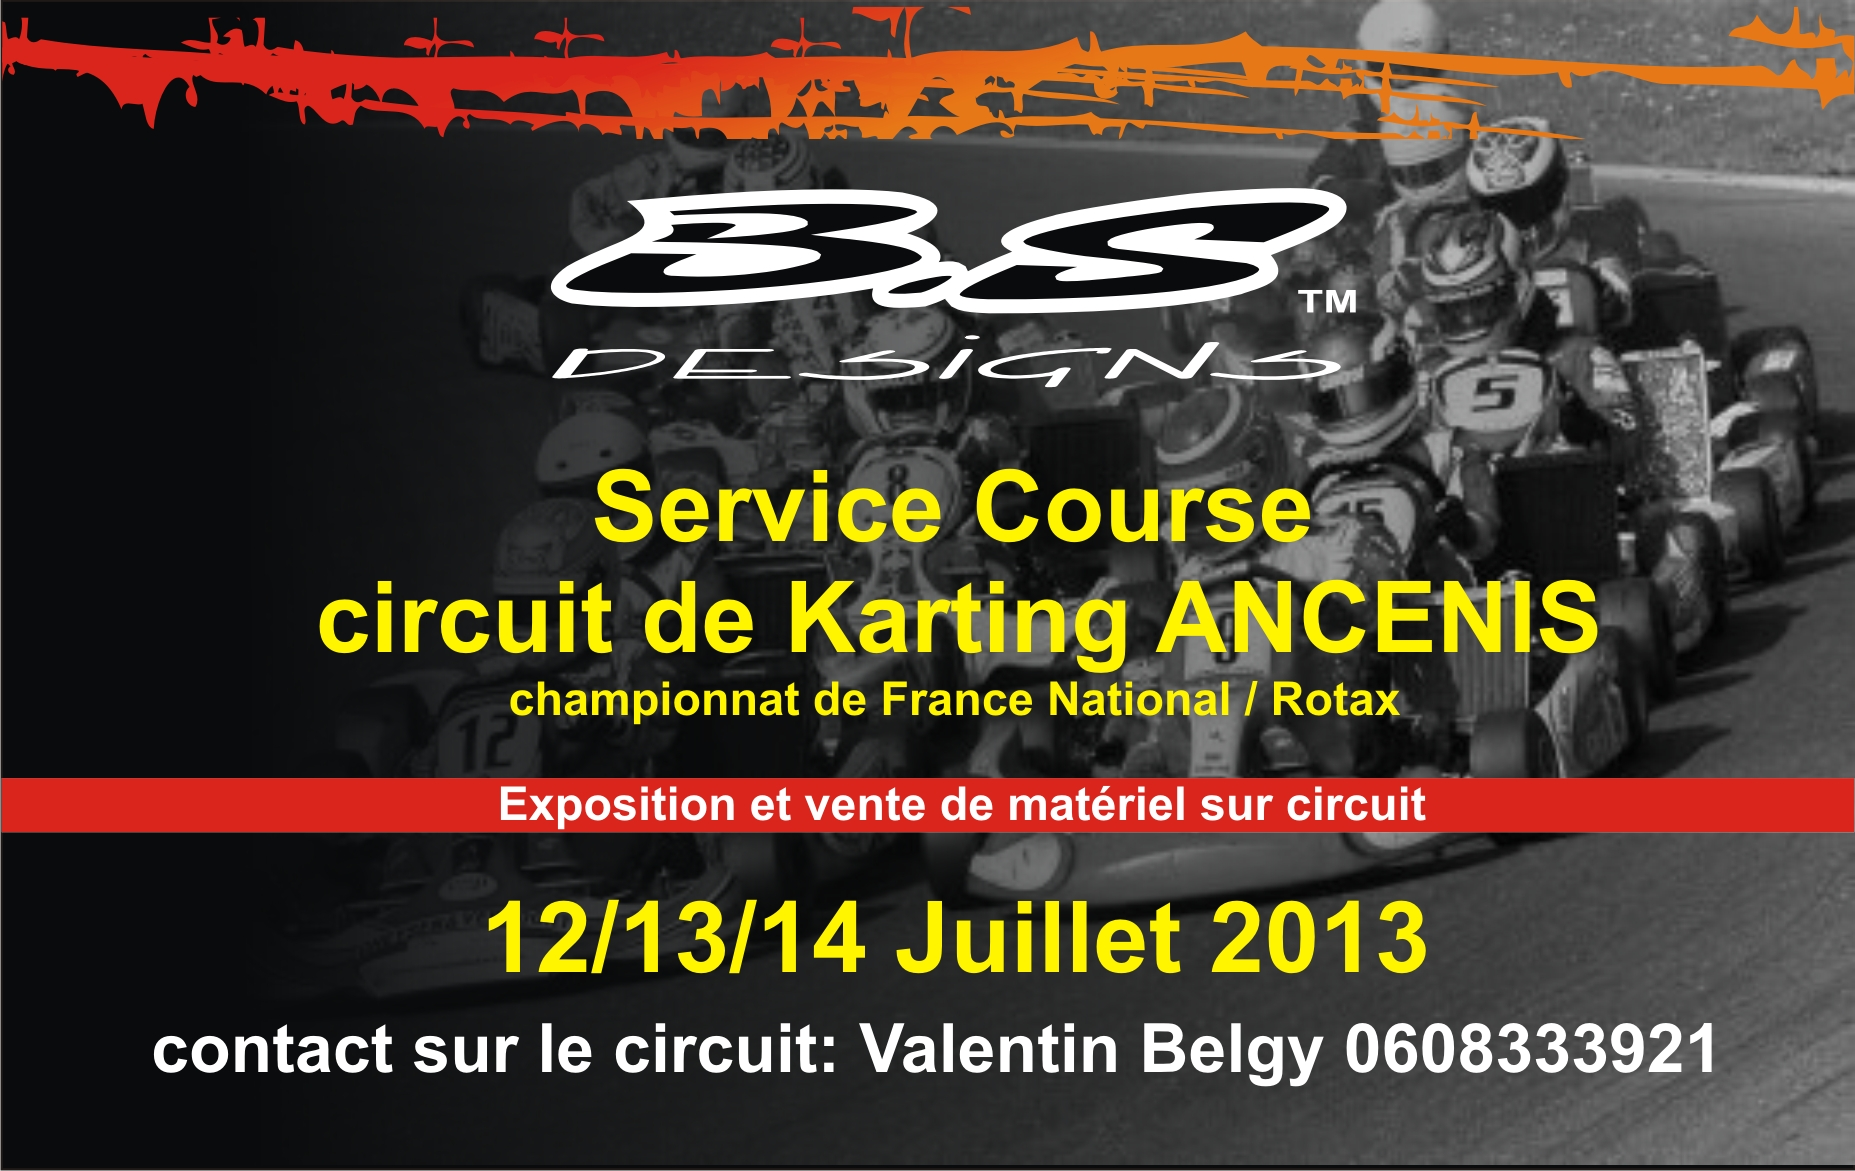 Service cource – BS Designs – 12/13/14 Juillet 2013 – circuit Ancenis Karting-